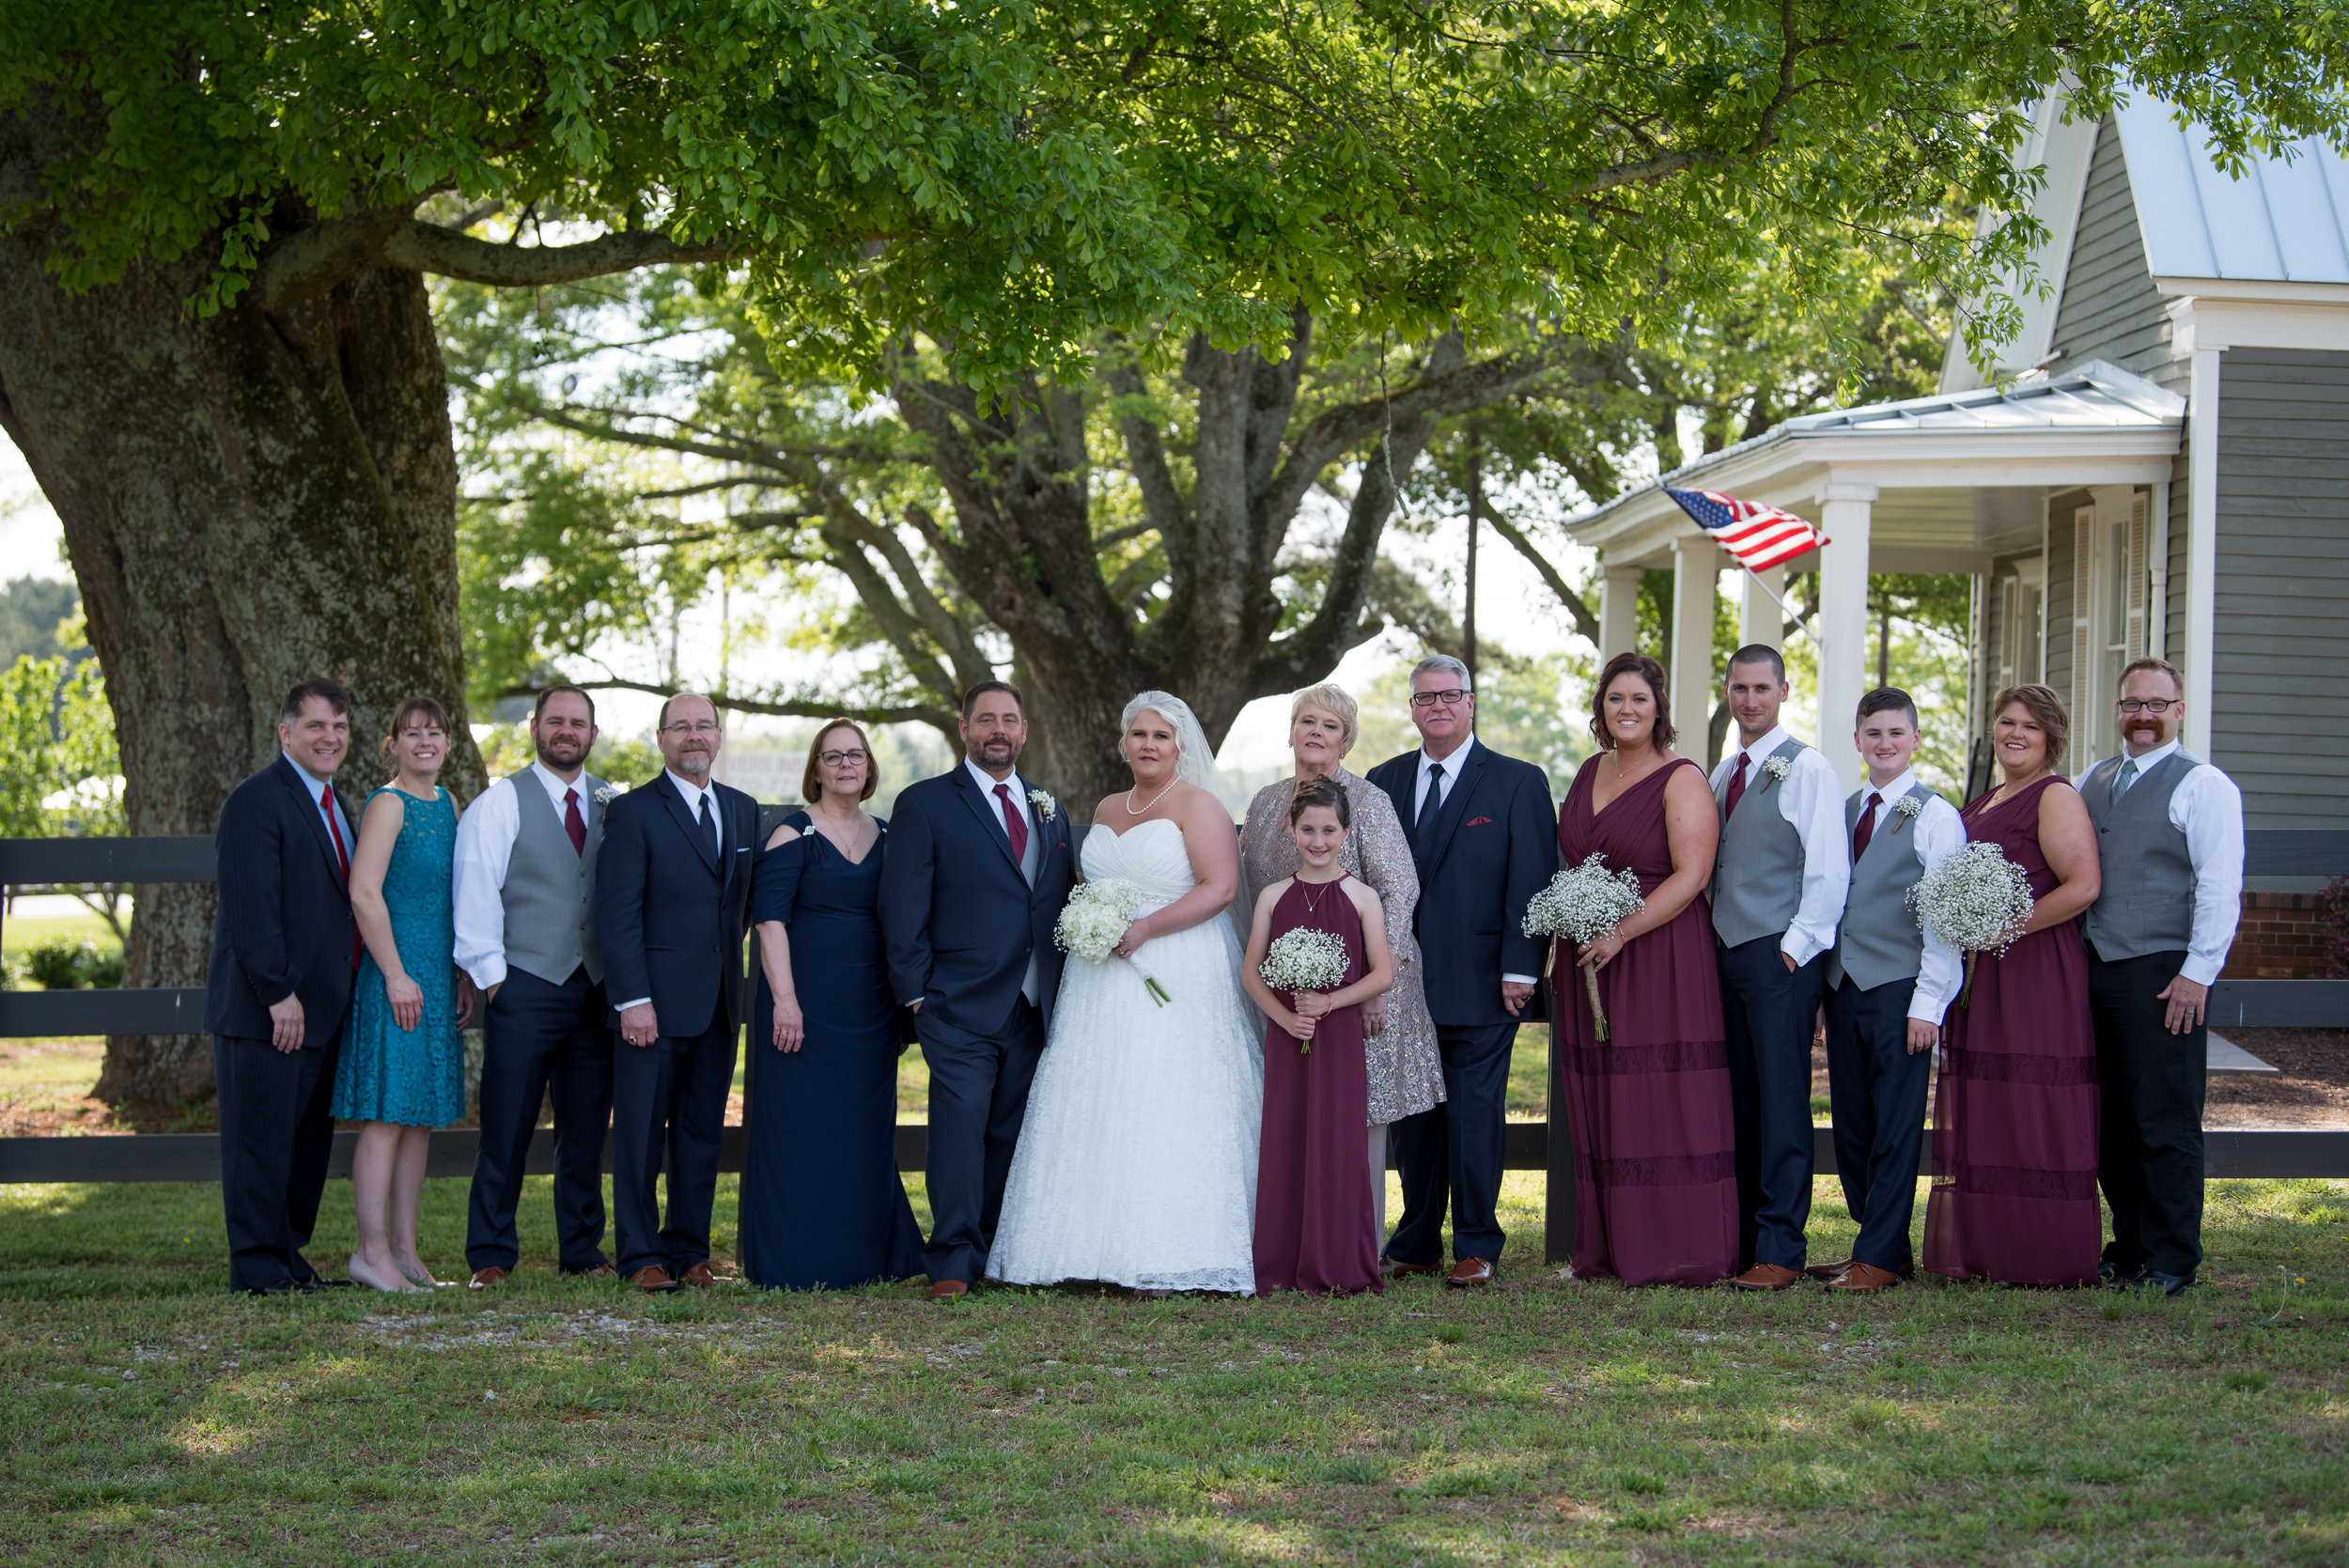 Families make your wedding day special, knowing dynamics can help your wedding coordinator keep the waters smooth! pc: Brian Dean Photography